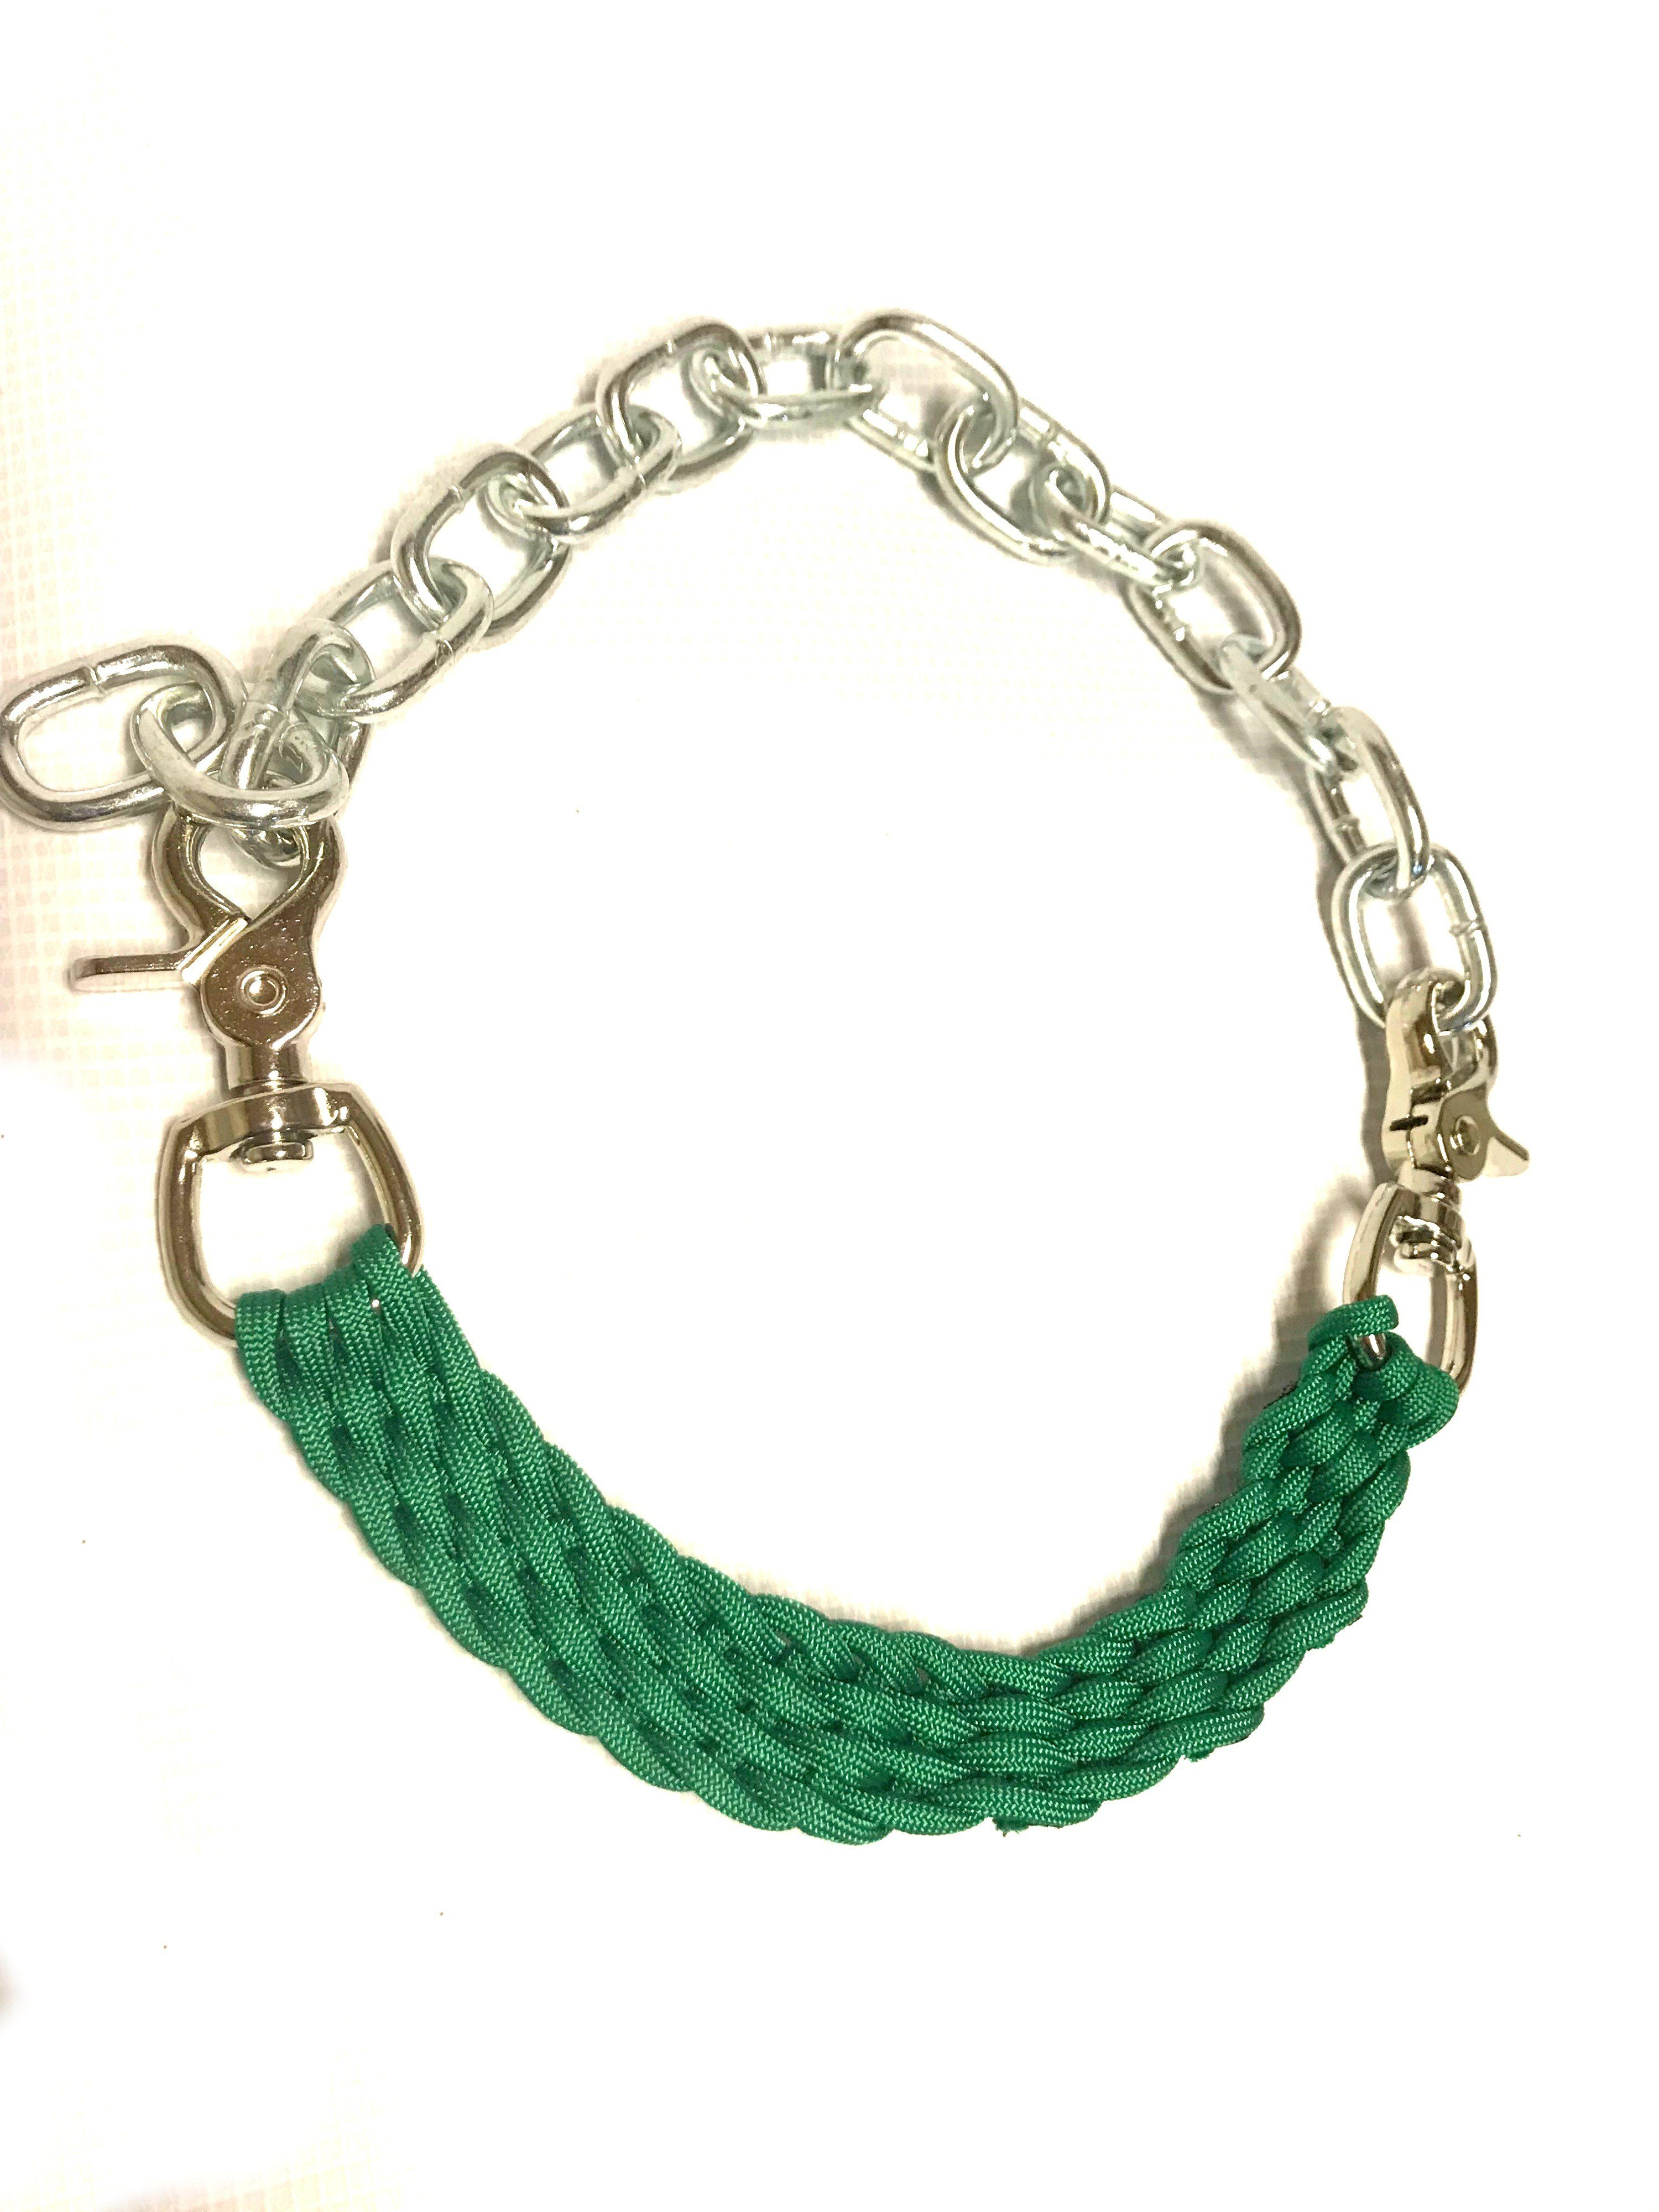 Goat Collar With Chain Show Goat Collar Beaded Bracelets Beaded Necklace Show Goats